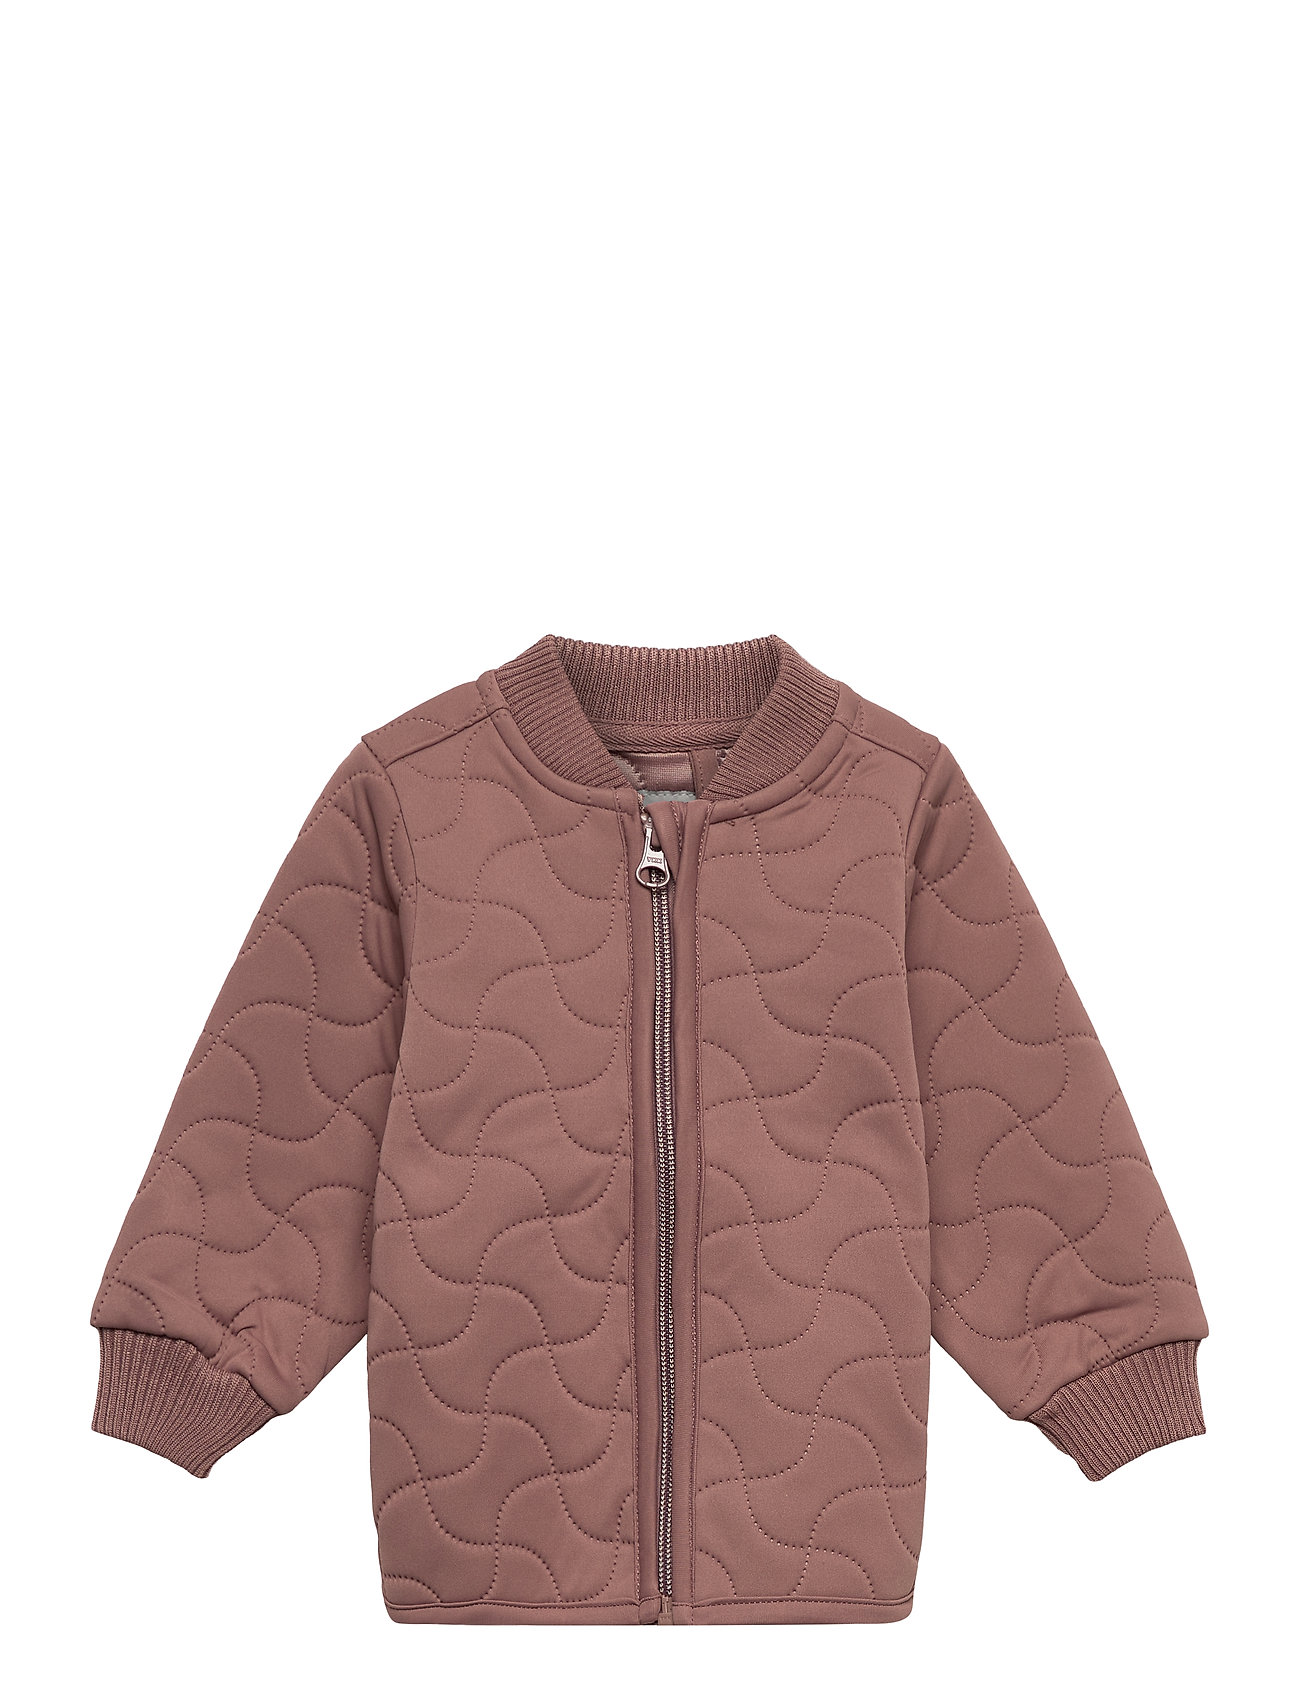 Image of Thermo Jacket Loui Outerwear Thermo Outerwear Thermo Jackets Lyserød Wheat (3447240313)